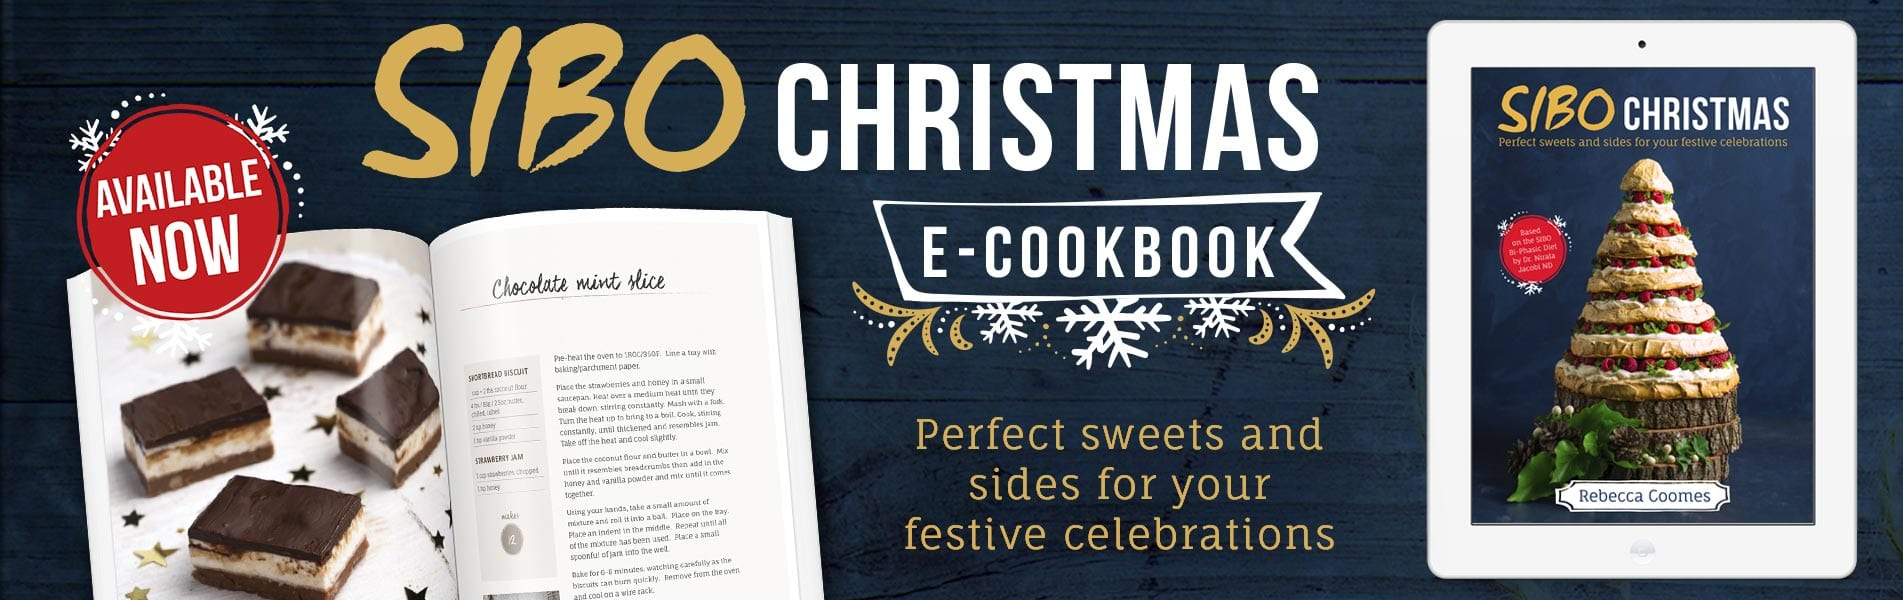 Christmas Book Available Website Banner